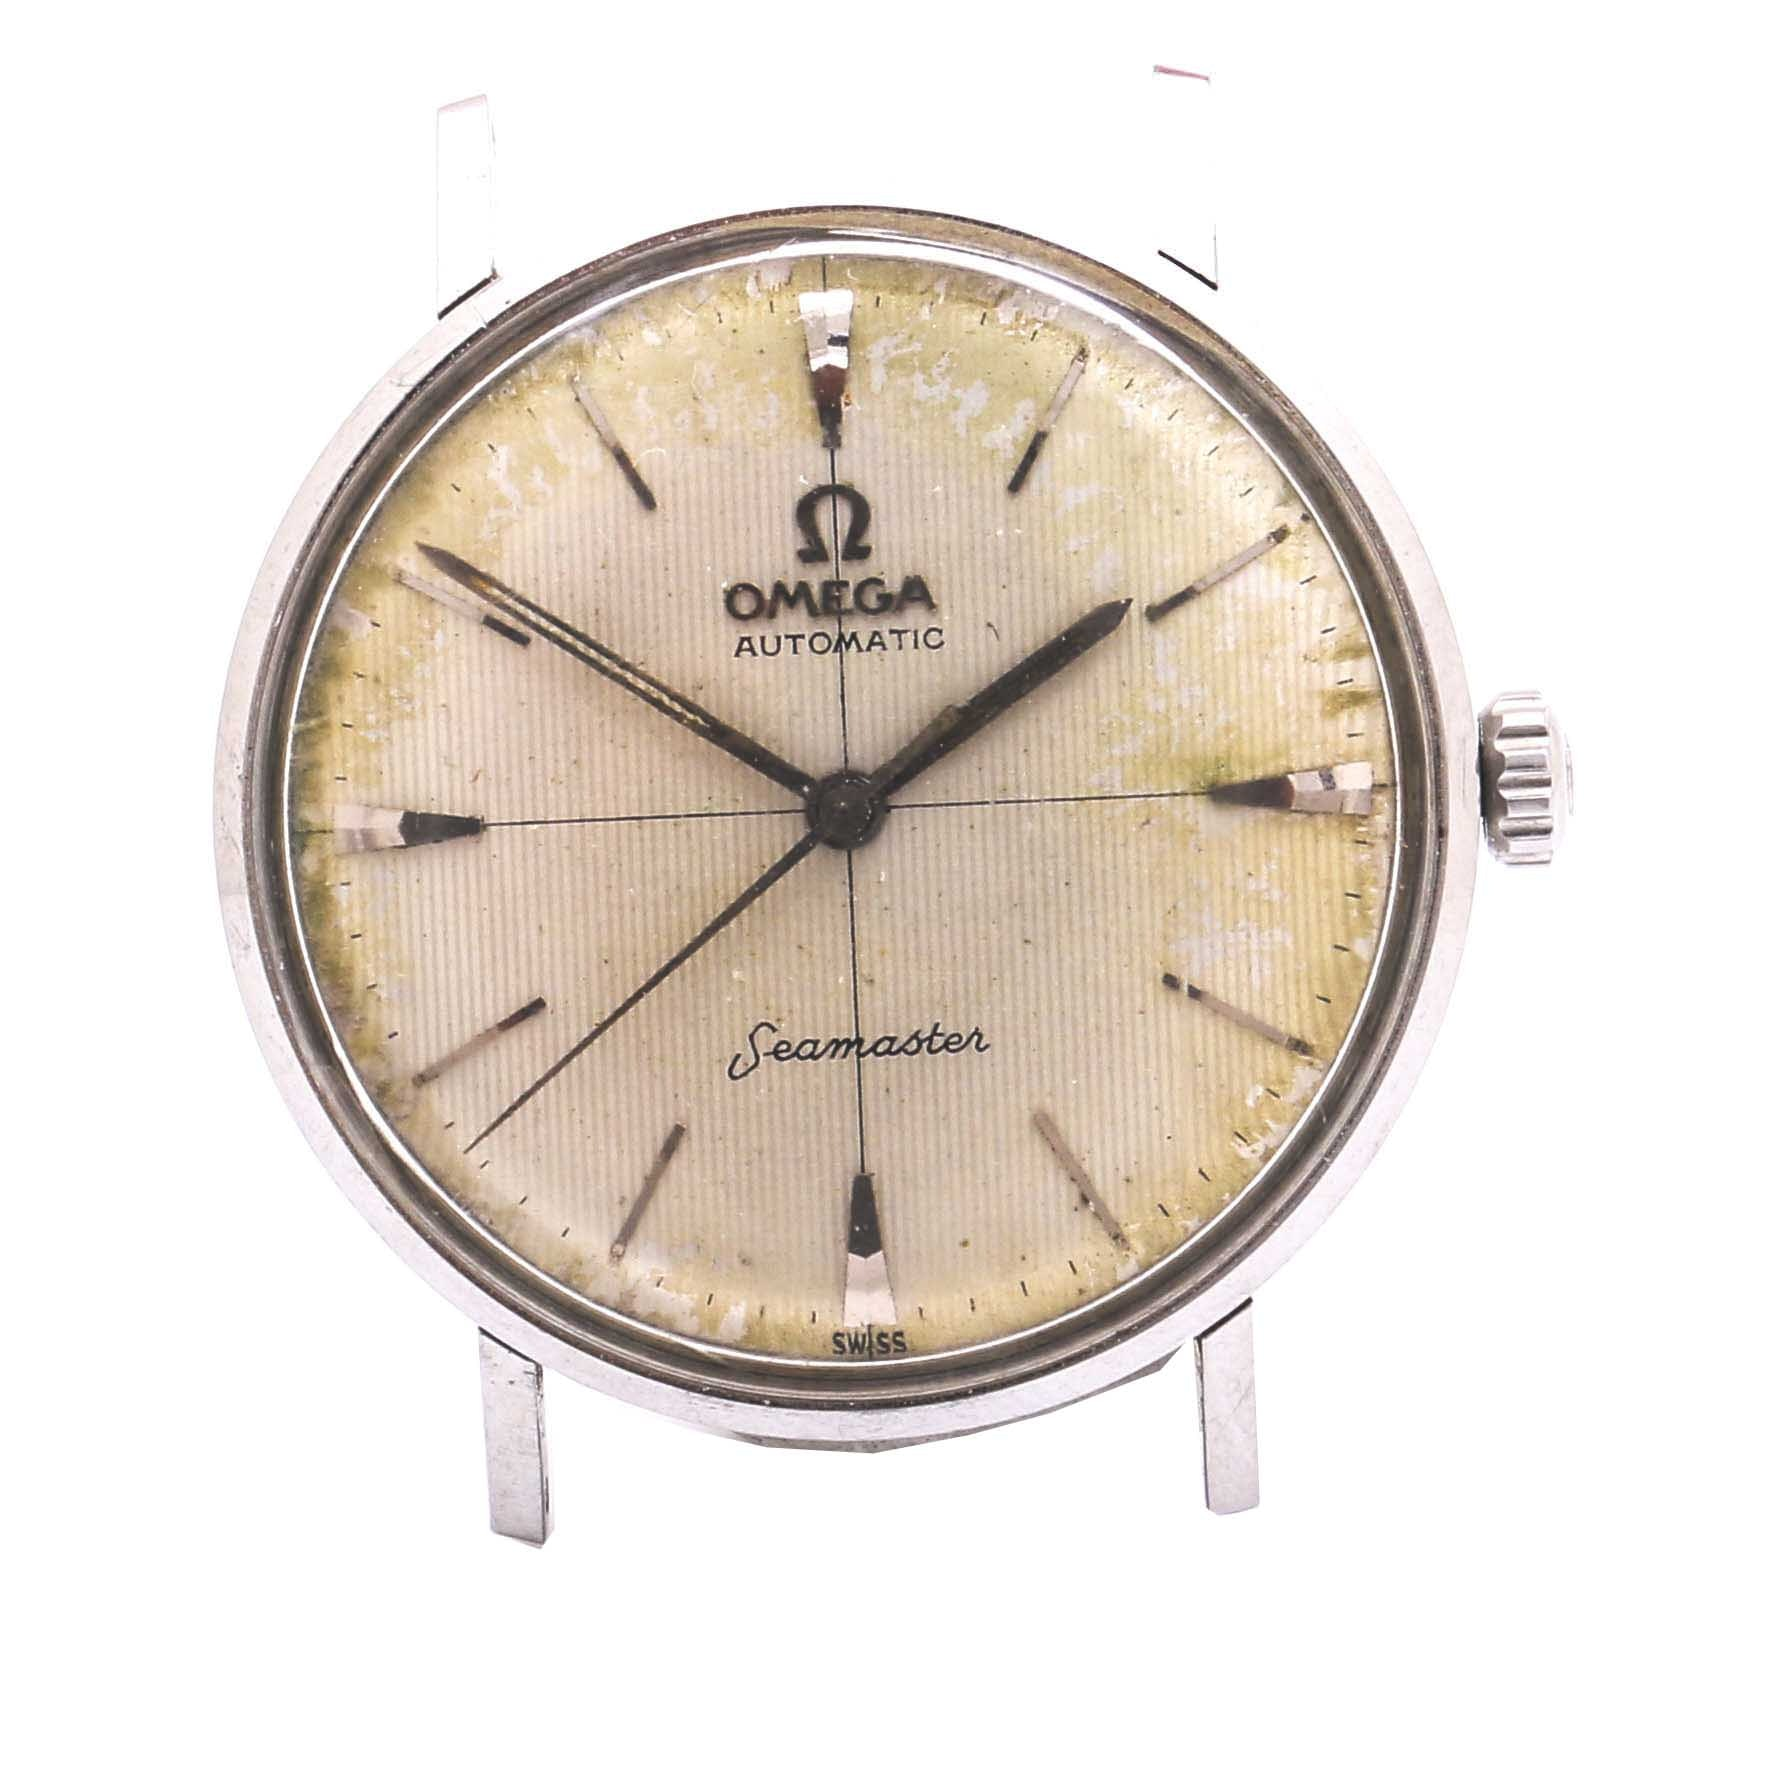 Vintage Omega Seamaster Automatic Watch Case